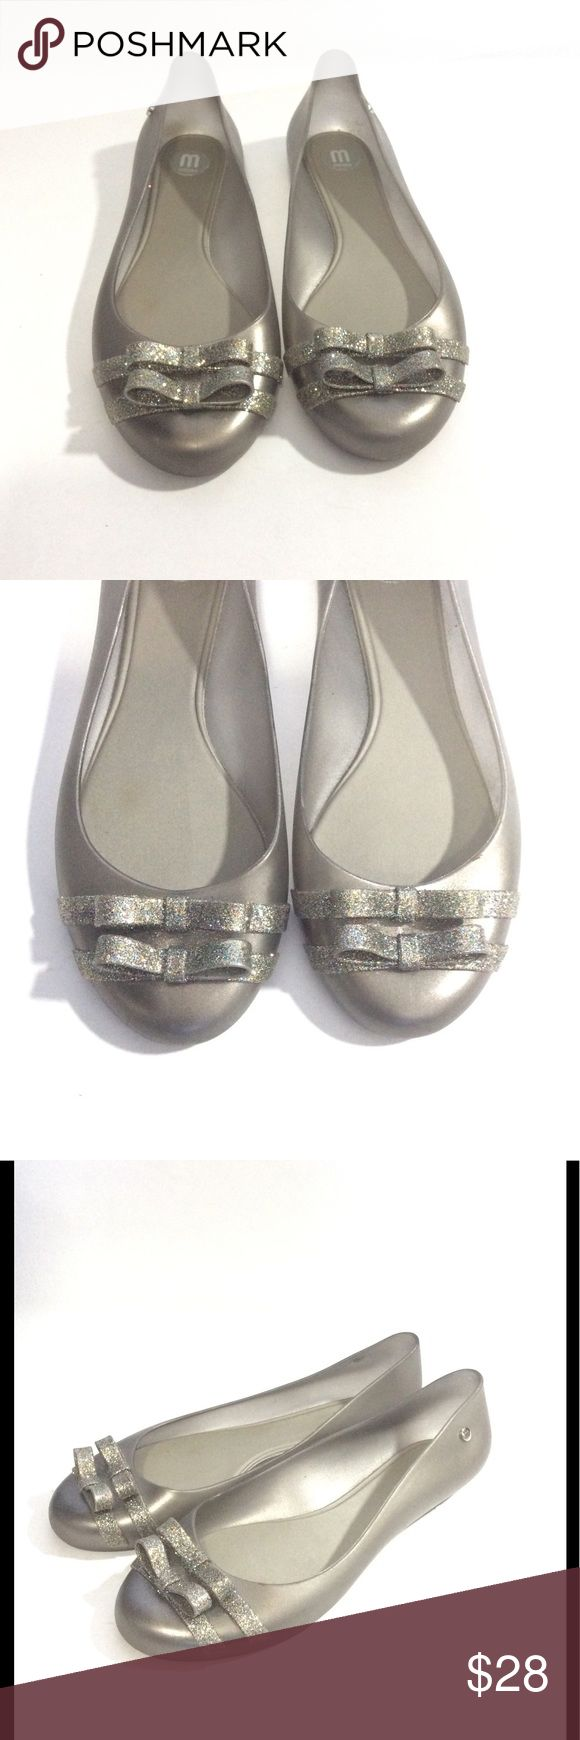 Melissa Silver Glitter Double Bow Jelly Flats 8 For sale is this super cute pair of Melissa double bow ballet flats! Perfect for fun everyday wear!   Women's Size 8 Eur 39  Great condition! Light scuffs. Melissa Shoes Flats & Loafers